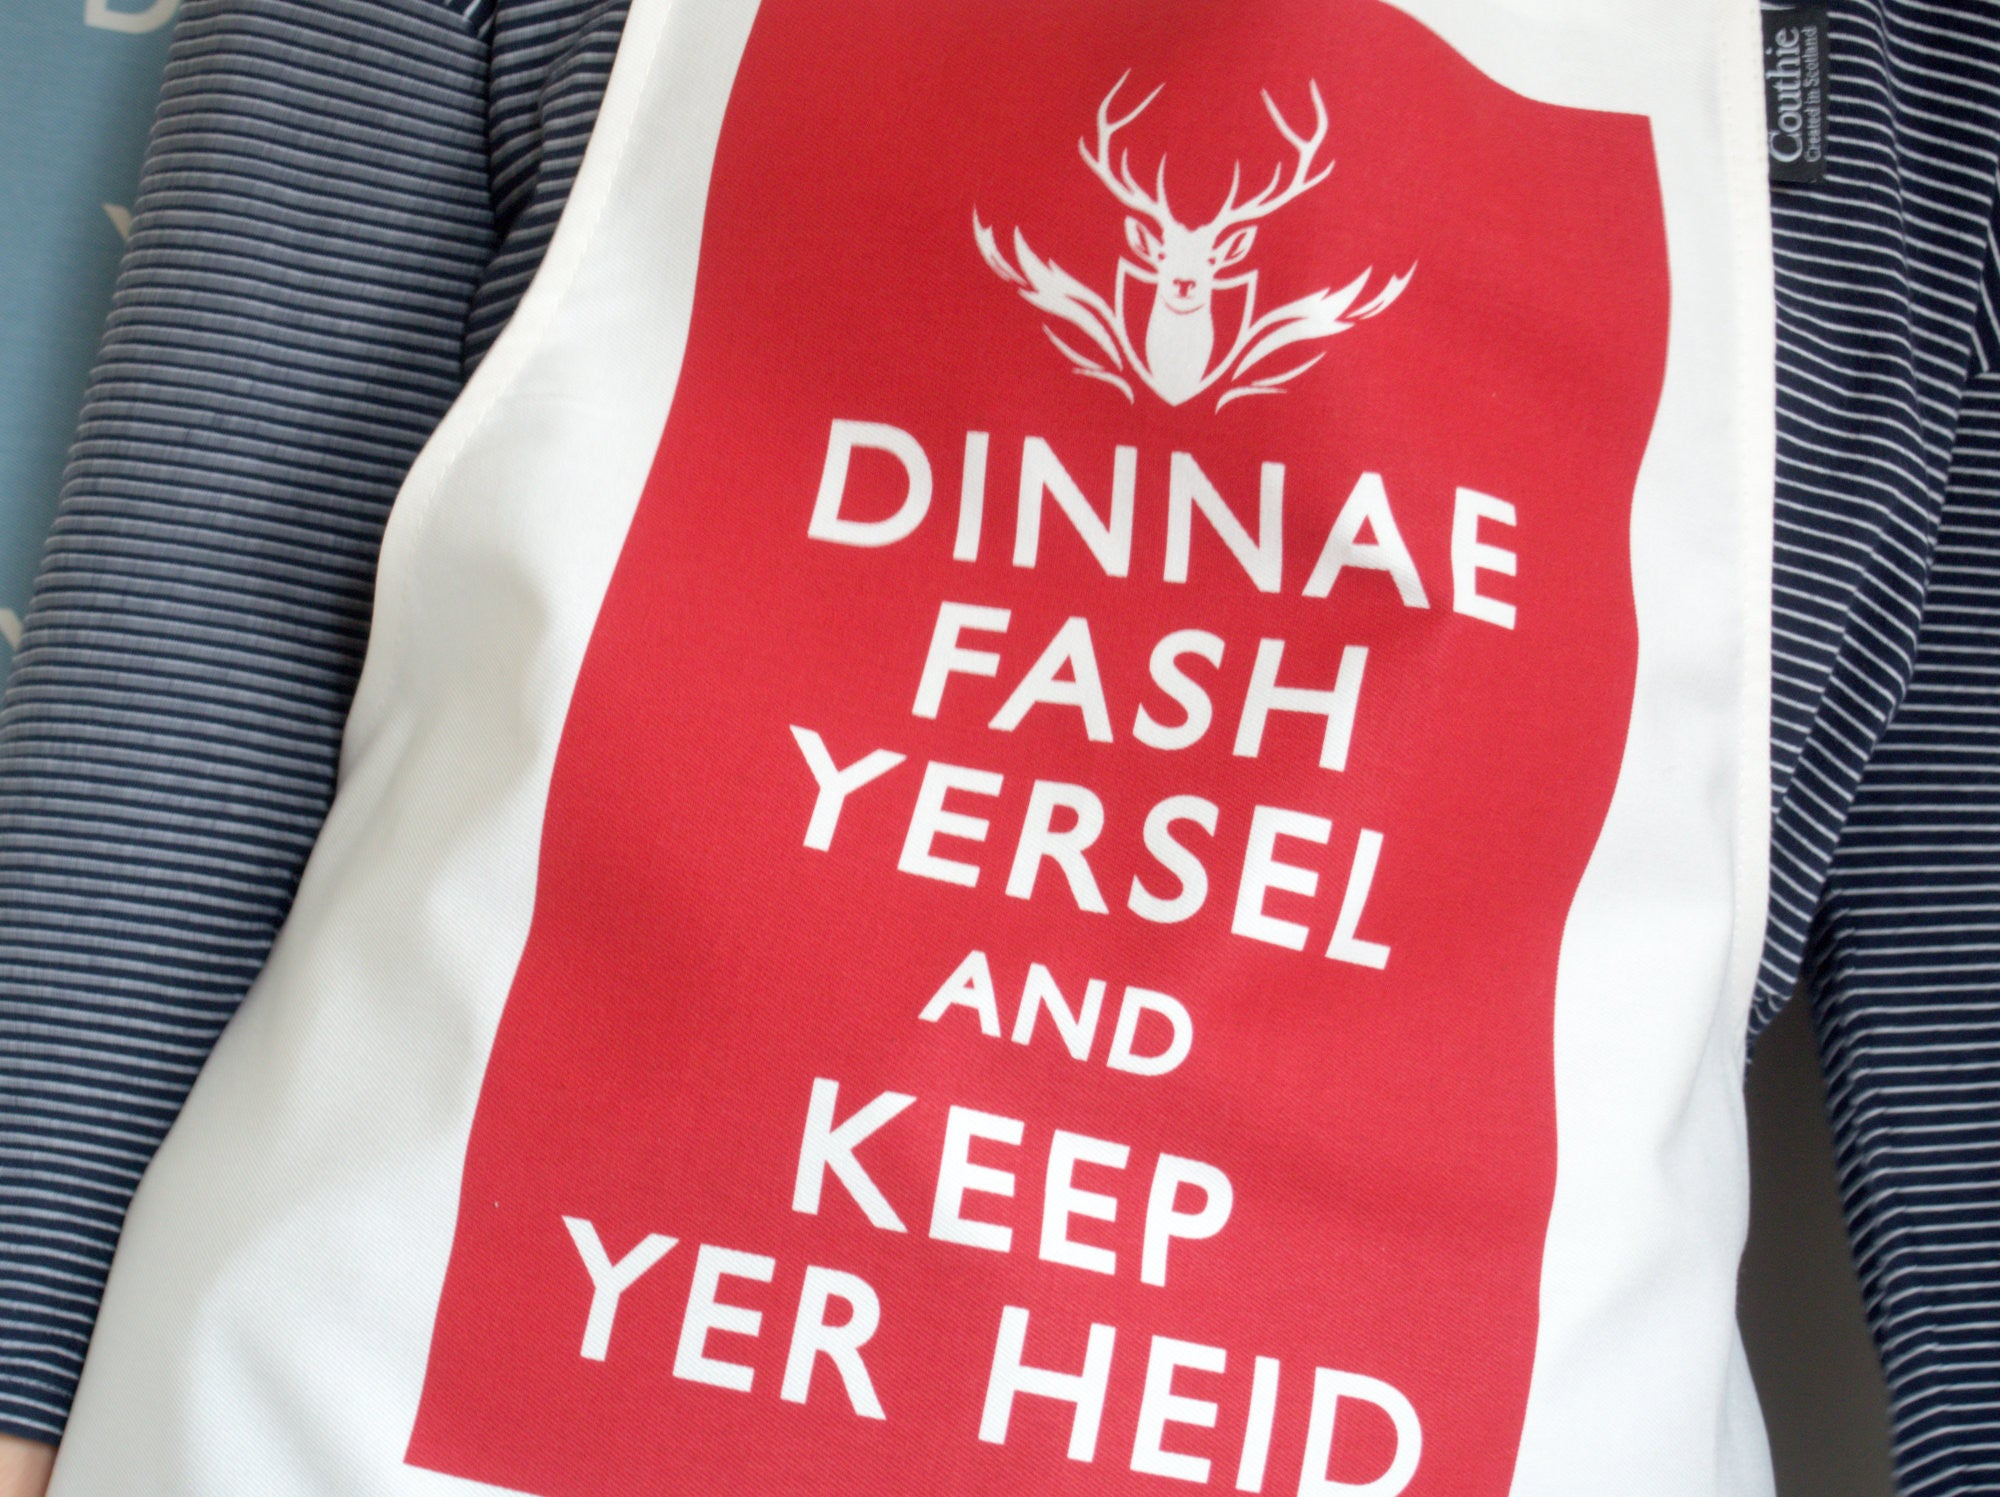 Dinnae Fash Yersel and Keep Yer Heid - Classic Collection Cotton Drill Aprons